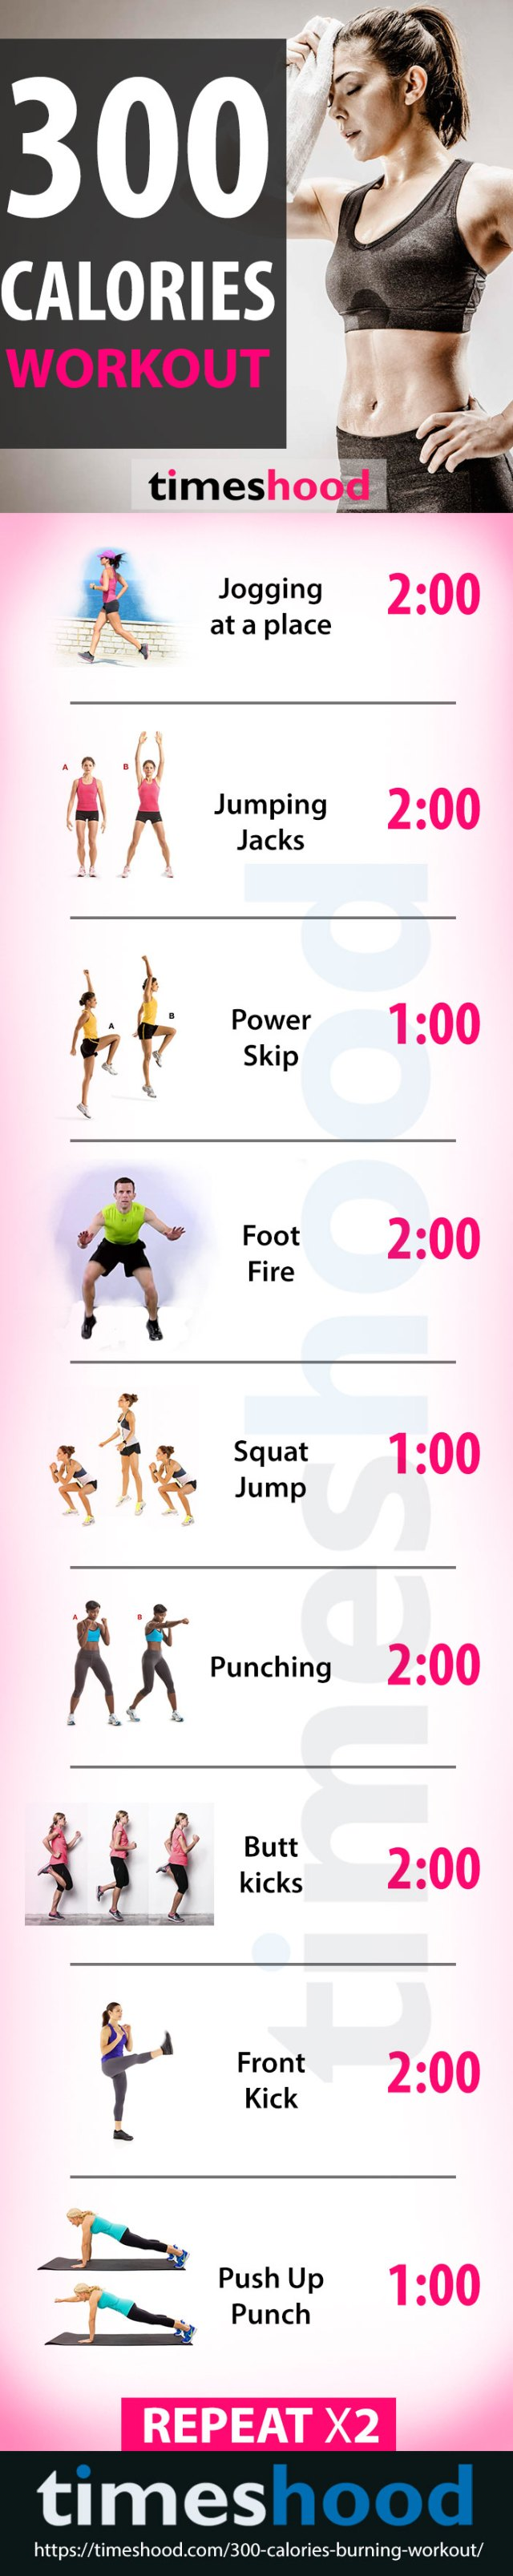 30 Minute, 300 Calories Burning Workout At Home - Timeshood